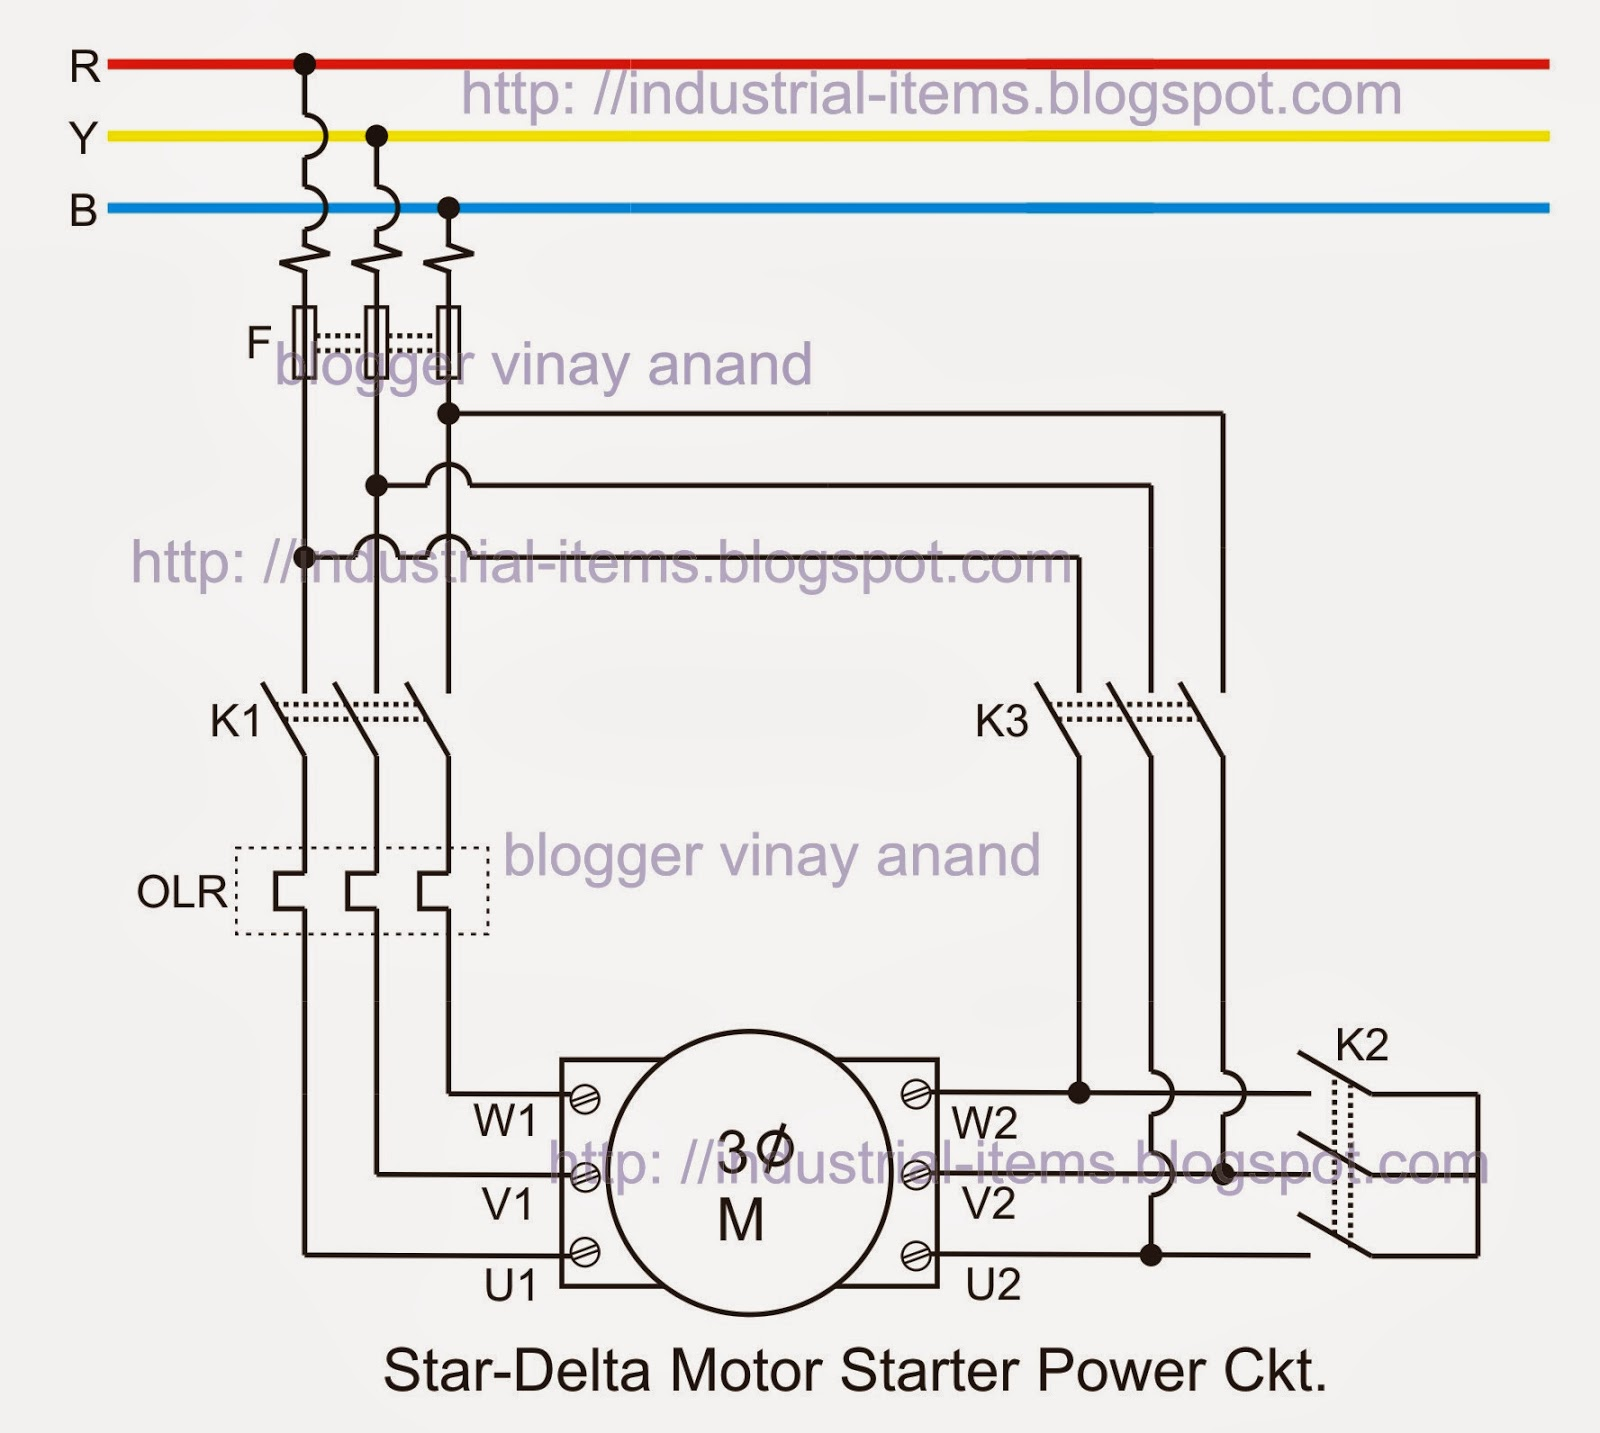 wye delta motor starter wiring diagram 06 gsxr 600 3 phase for controls get